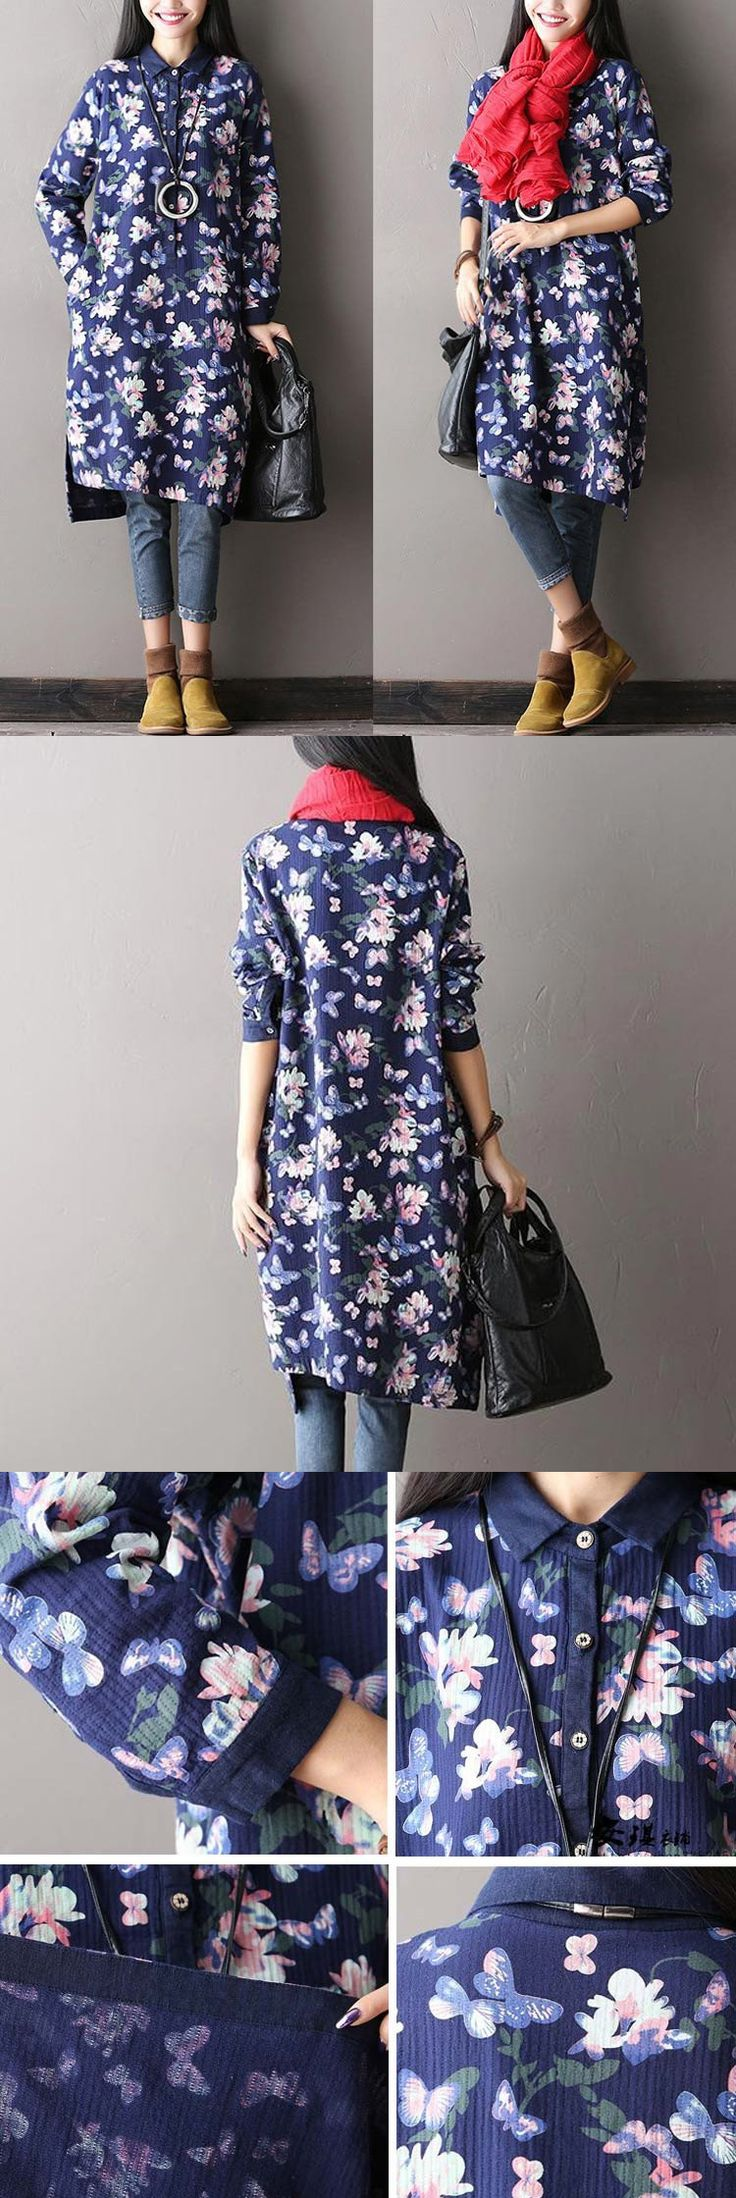 Big FLORAL pinted fittable dress for a Bohemian look.buykud dresses